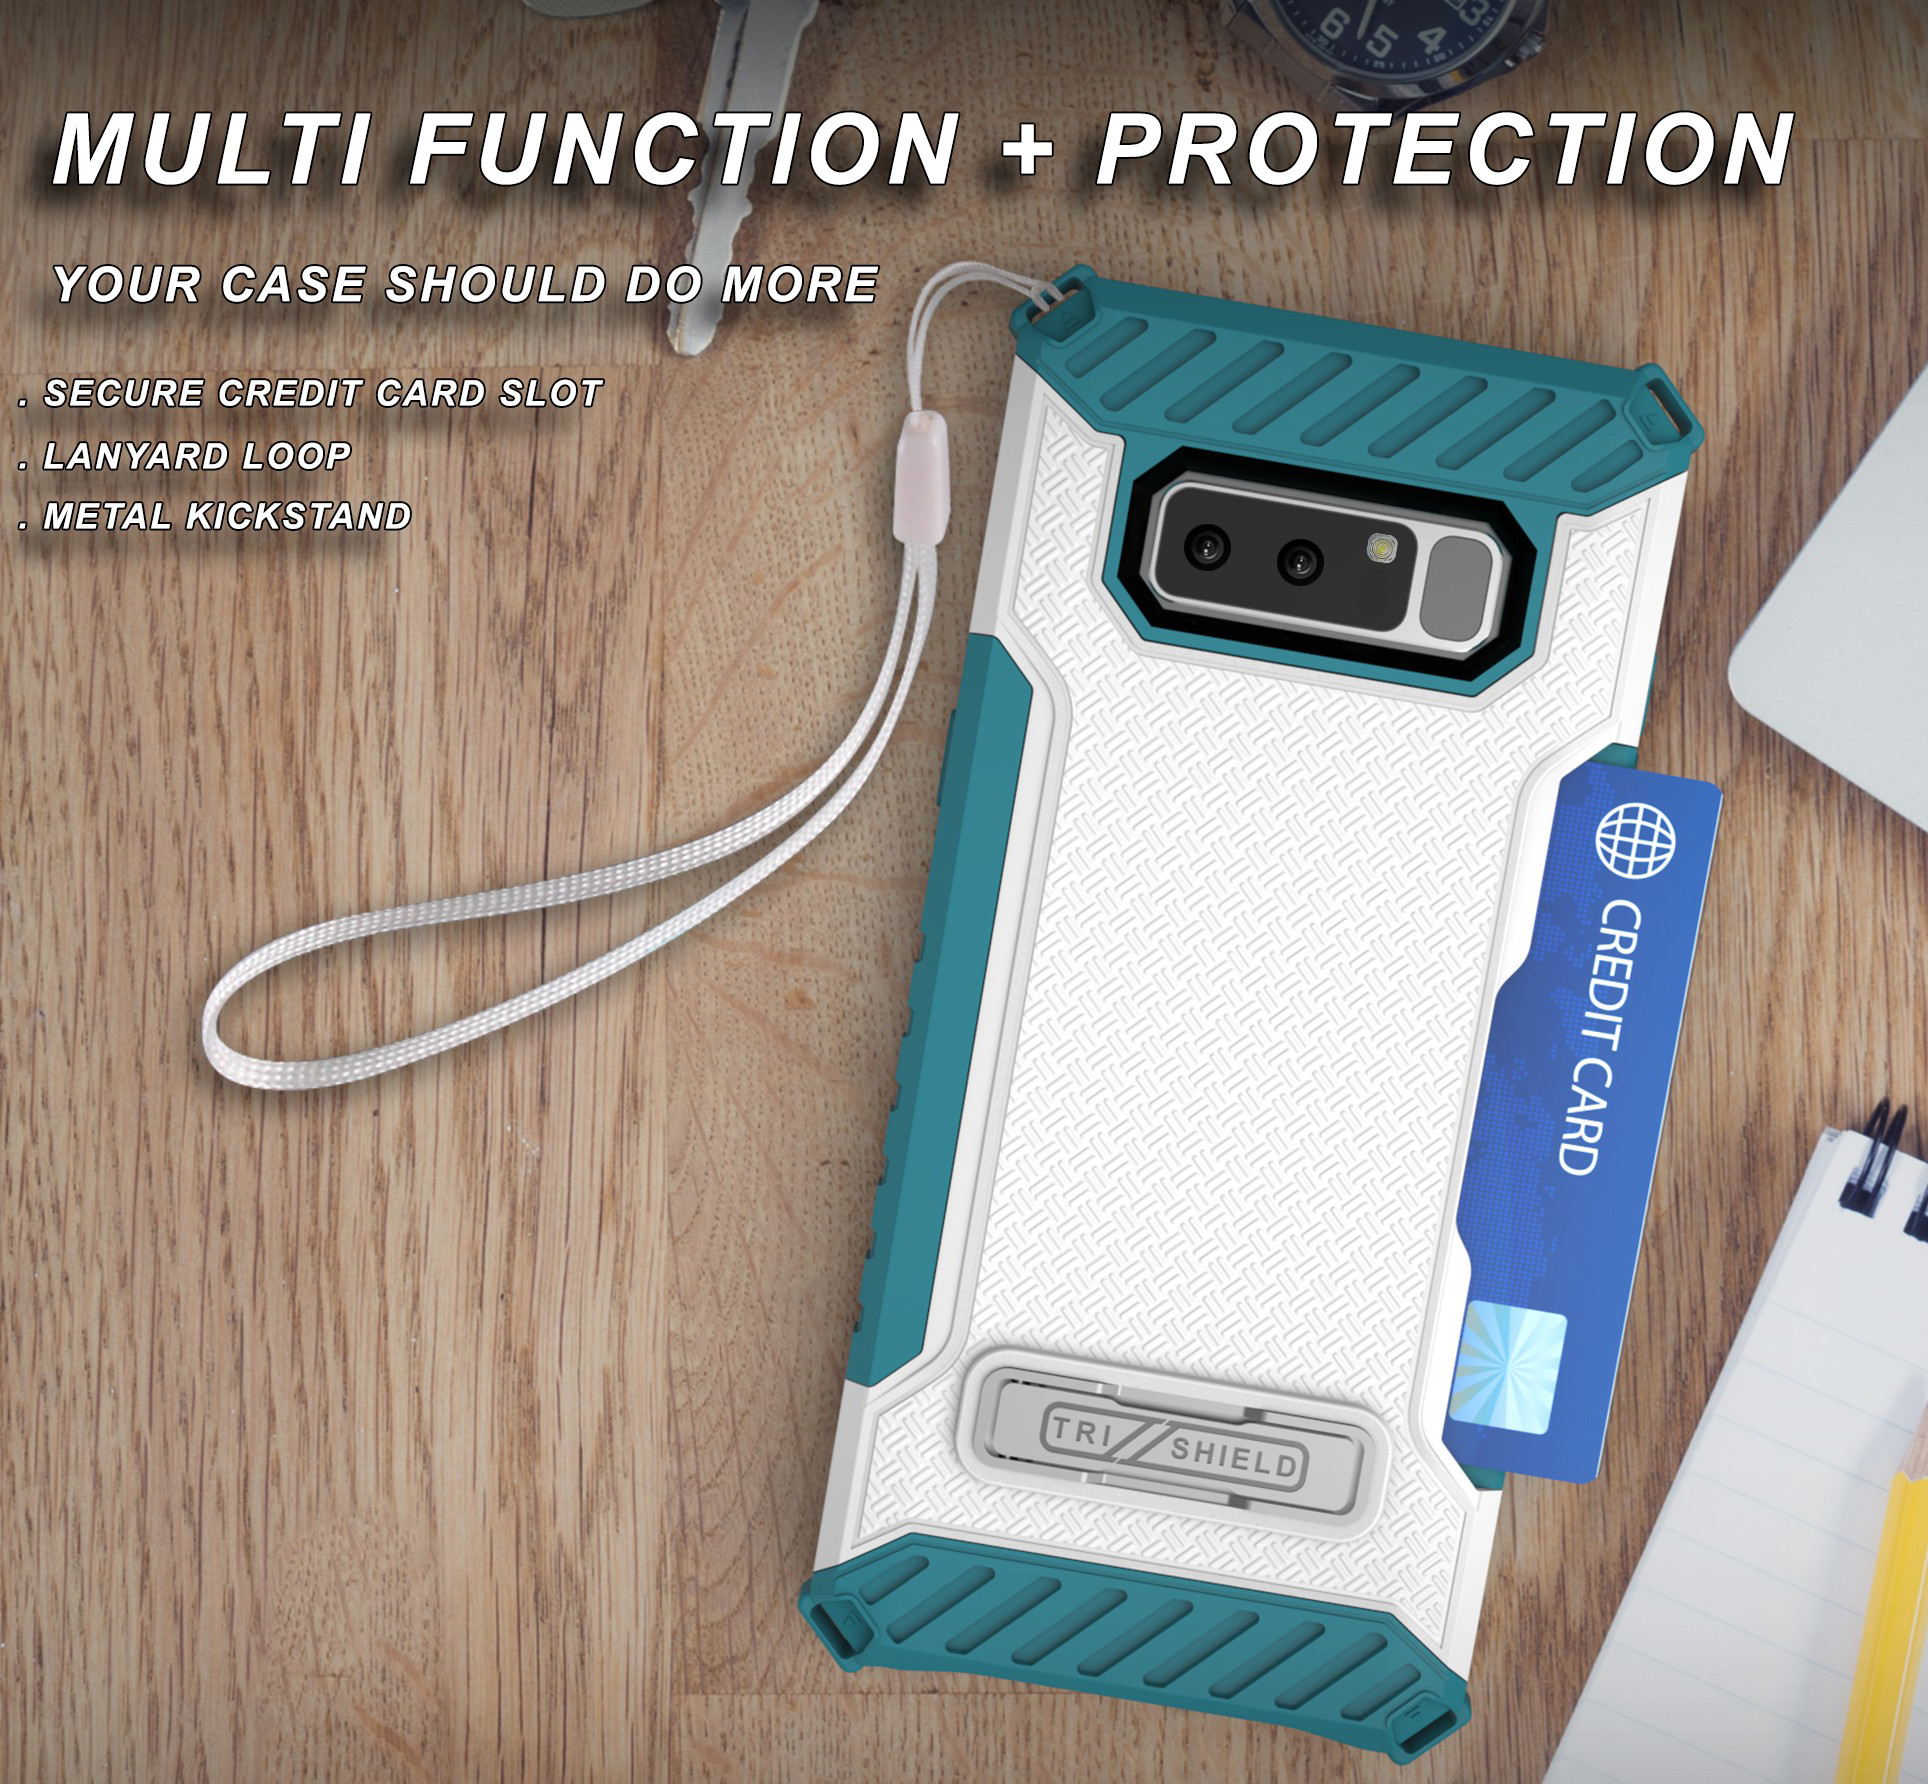 huge discount d7a9b dad35 Details about TRI-SHIELD RUGGED CASE KICKSTAND CARD SLOT LANYARD FOR  SAMSUNG GALAXY NOTE 8